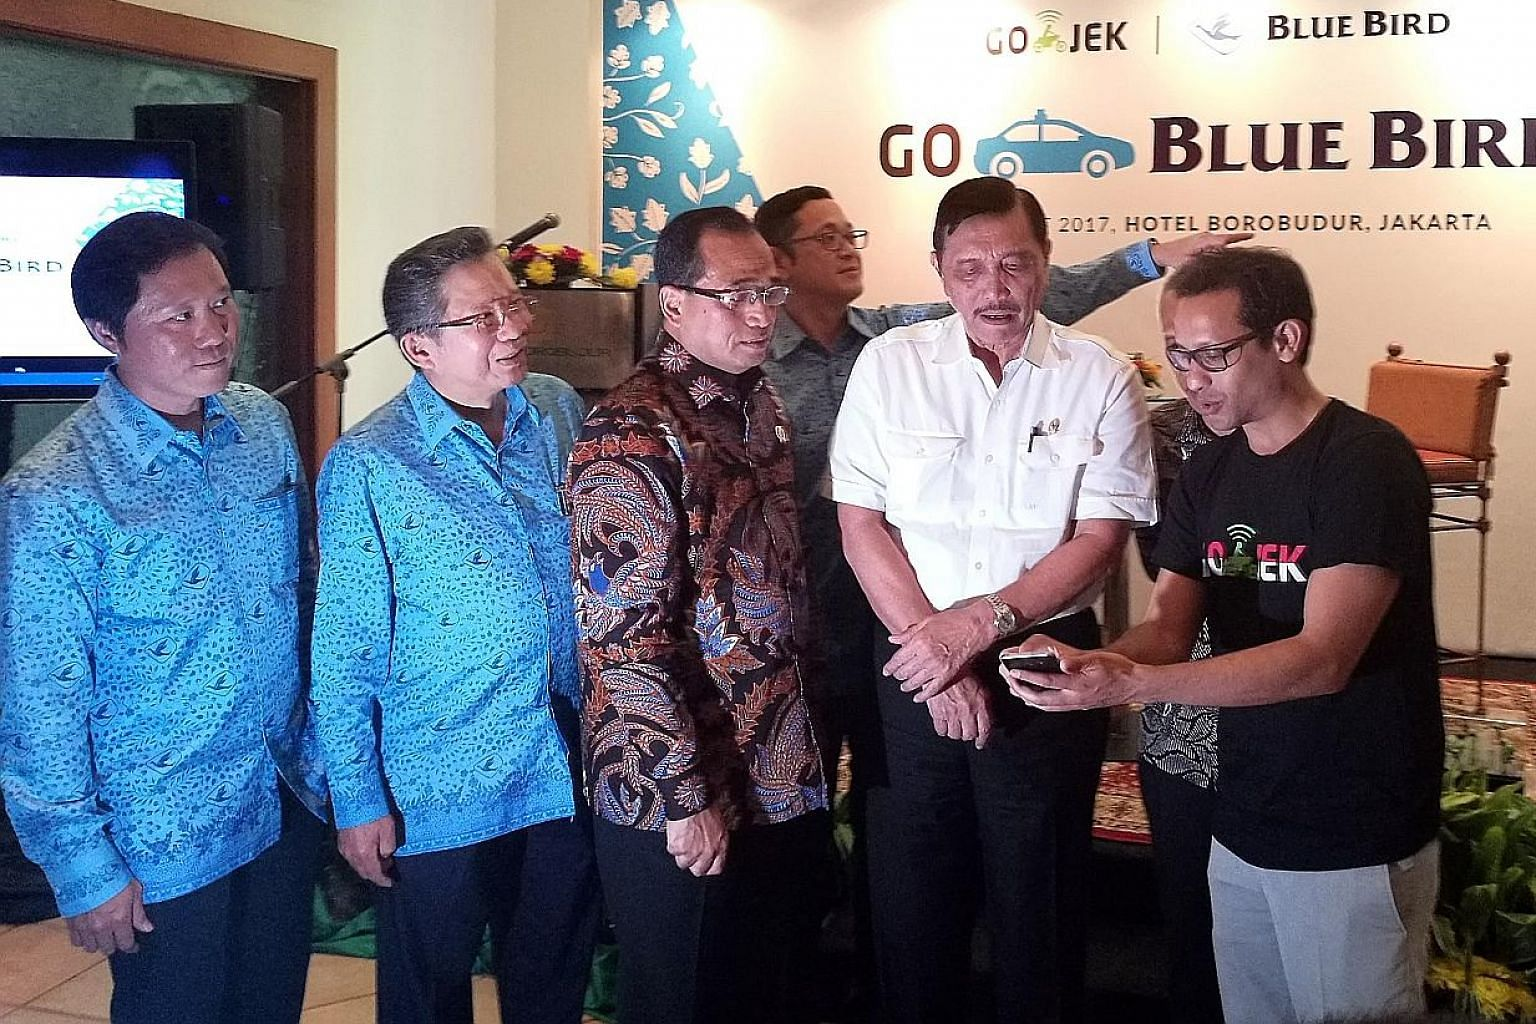 Coordinating Maritime Affairs Minister Luhut Pandjaitan (in white) at the launch of a collaboration between Go-Jek and Blue Bird yesterday. He is flanked by Go-Jek chief executive Nadiem Makarim (in black T-shirt) and Transport Minister Budi Karya. A